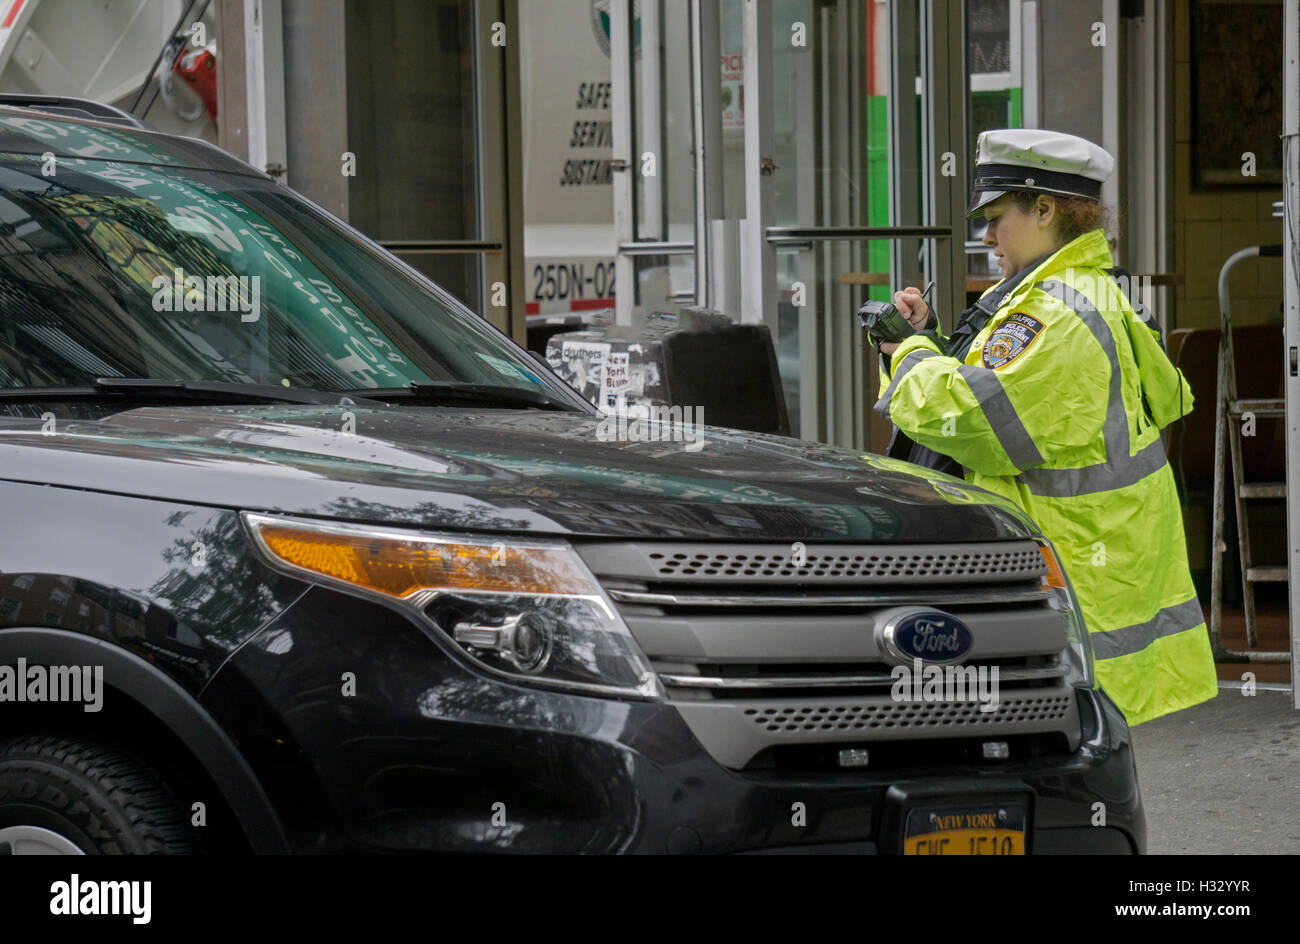 A New York City Police department traffic agent using a portable electronic ticket issuing machine on Bleeker St. - Stock Image